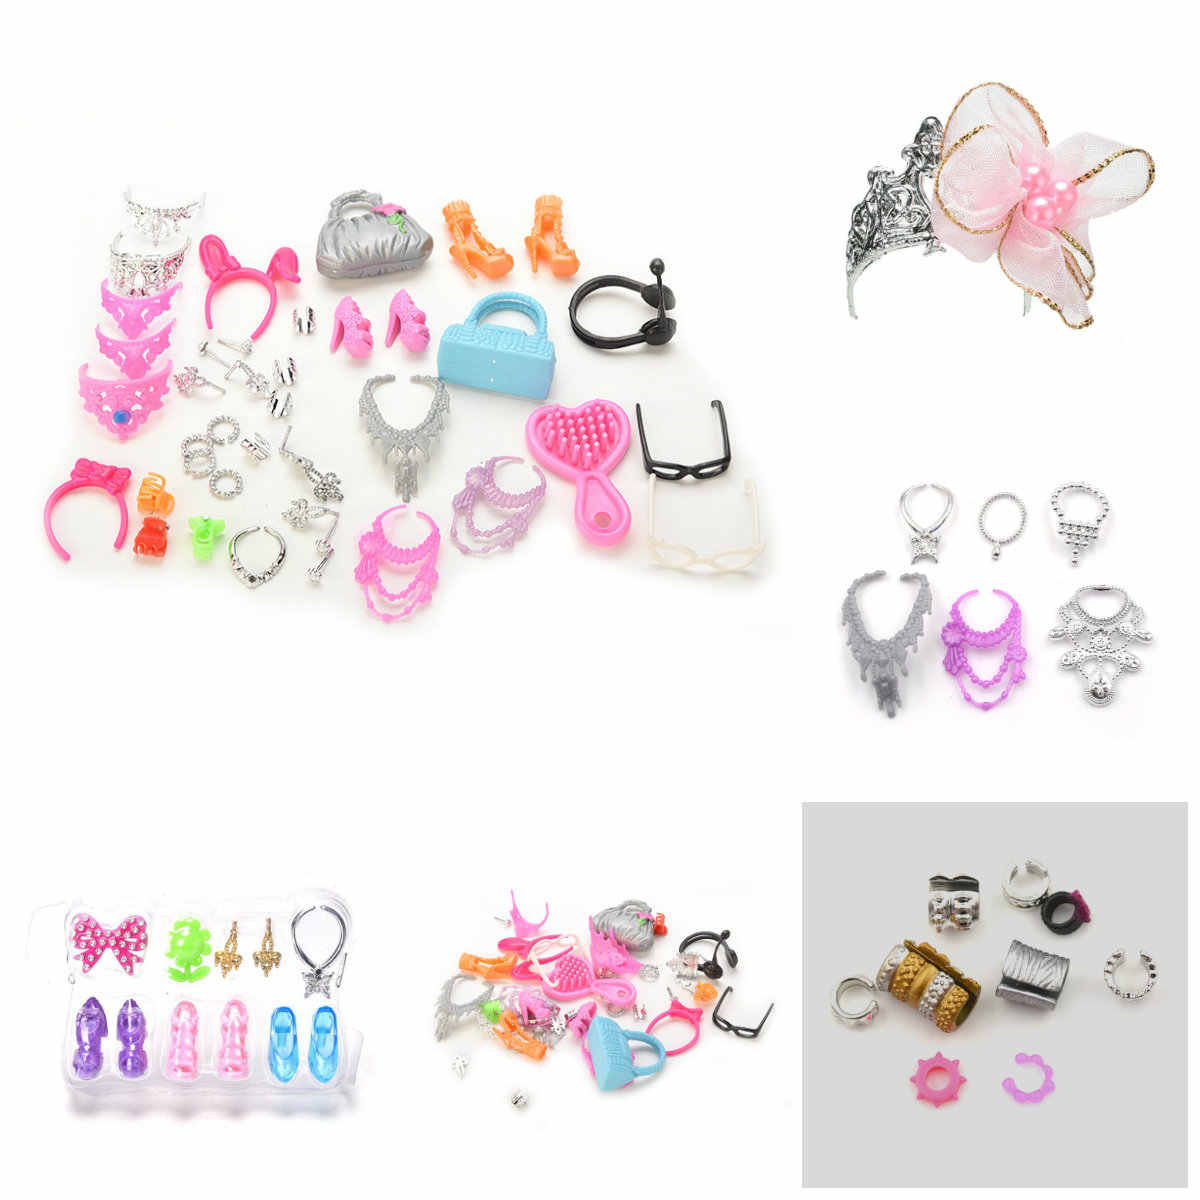 10pcs/pack Doll Decor Fashion Jewelry for girl Necklace Earring Bowknot Crown Accessory Dolls Girl Kids Gift